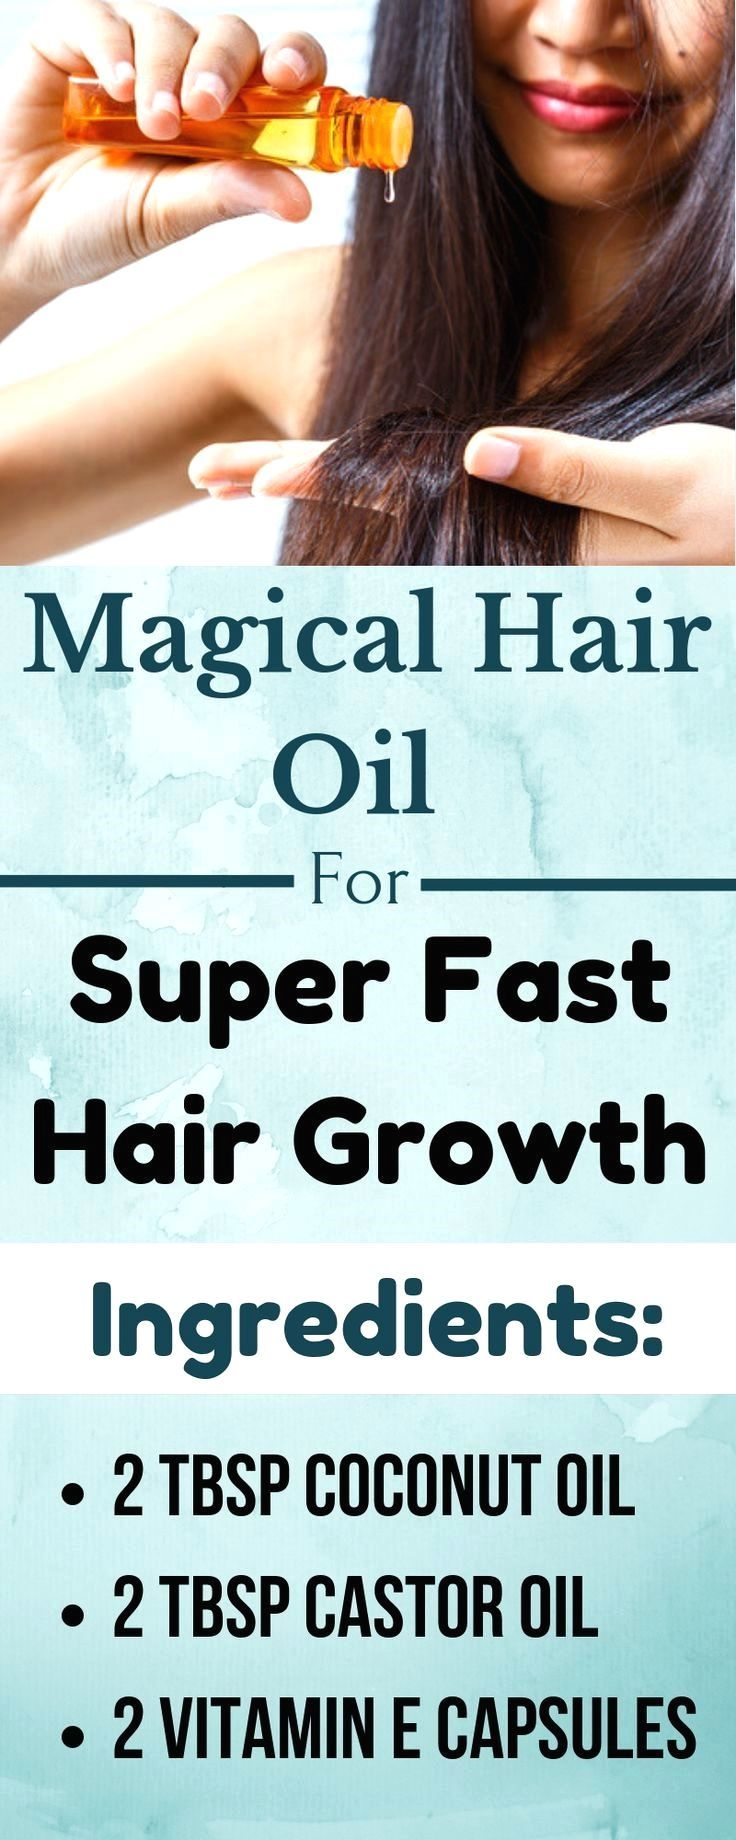 whats biotin best for in 2020 Super fast hair growth